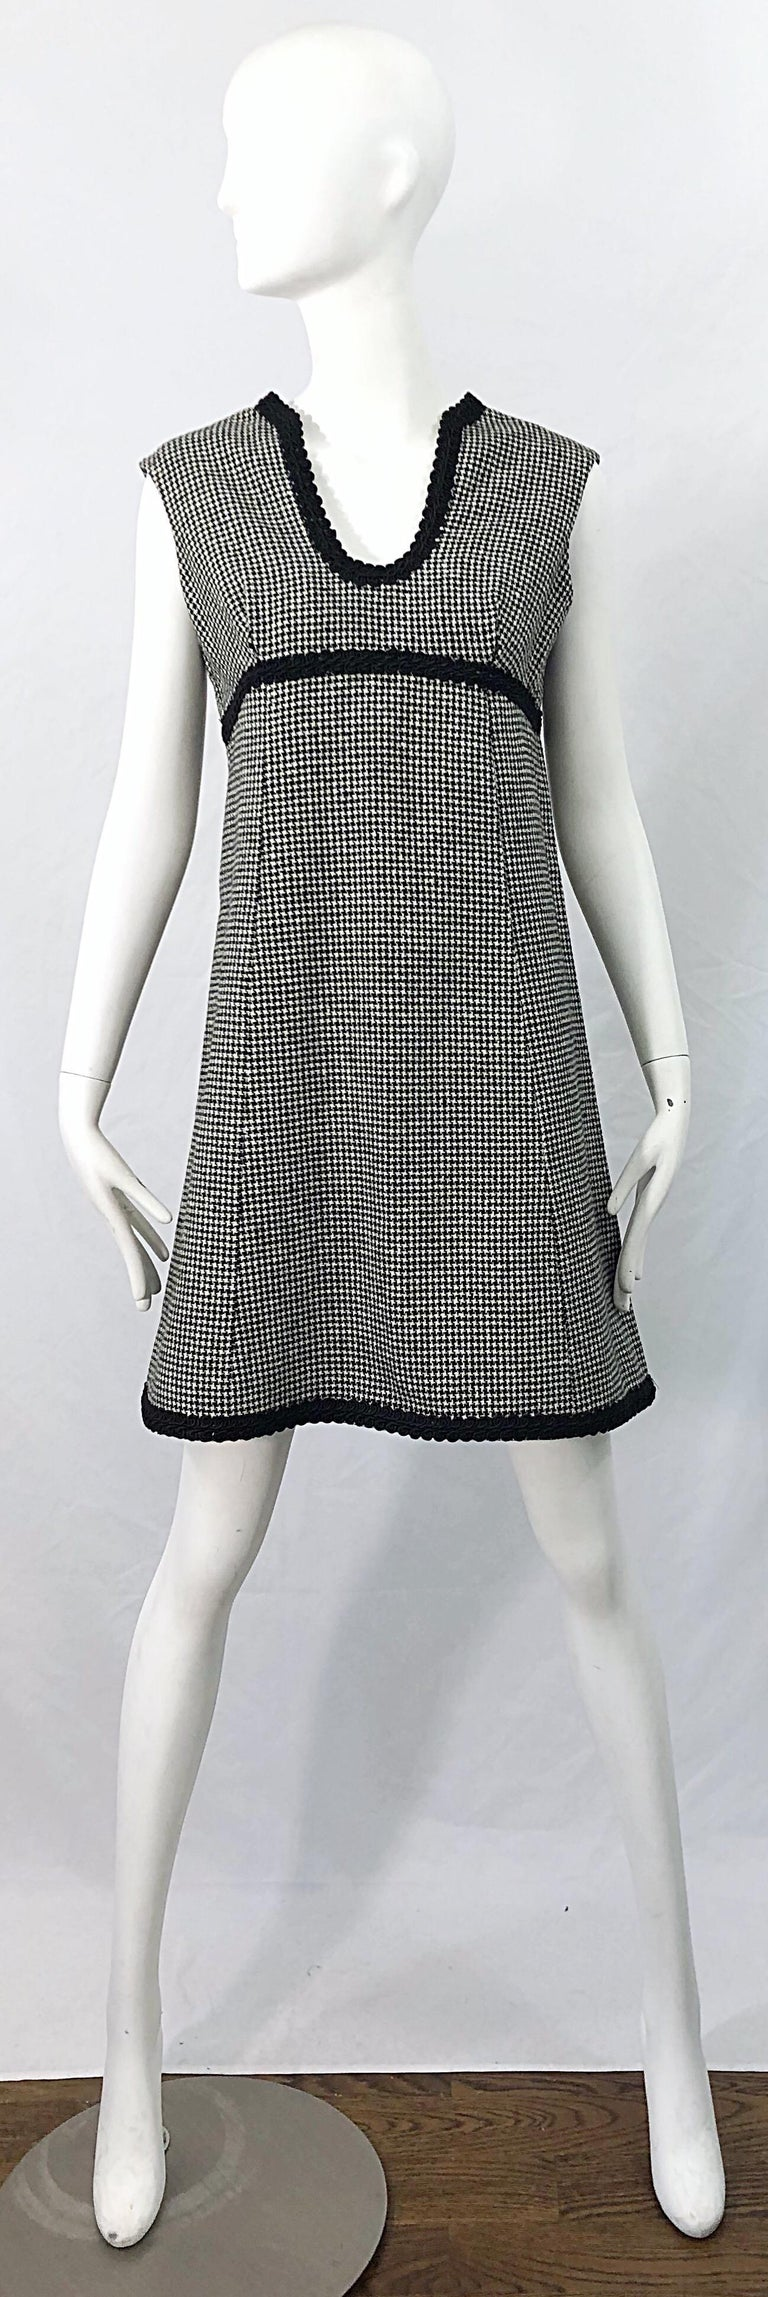 Chic MAMSELLE by BETTY CAROL black and white wool mini houndstooth print A-Line wool dress ! Features a pretty scooped v-neck with black embroidery. Empire style waist with embroidery under the bust and at the hem. Full metal zipper up the back with